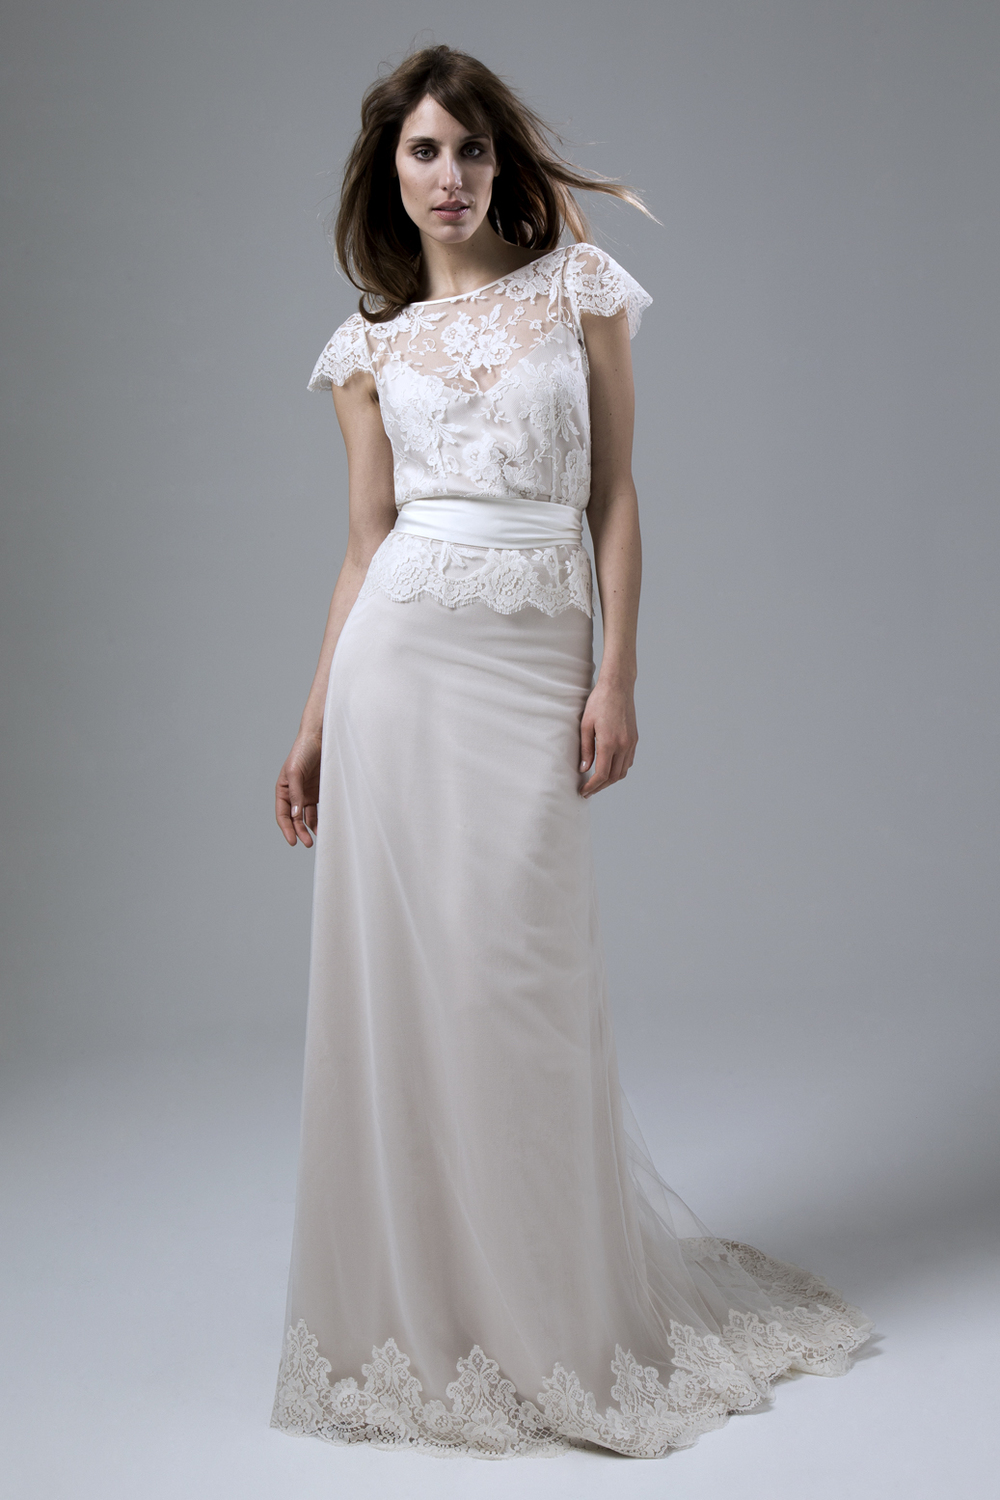 Iris French Lace Jacket with Andrea Silk Tulle and French Lace Skirt with Ivory Sash Wedding Dress by Halfpenny London